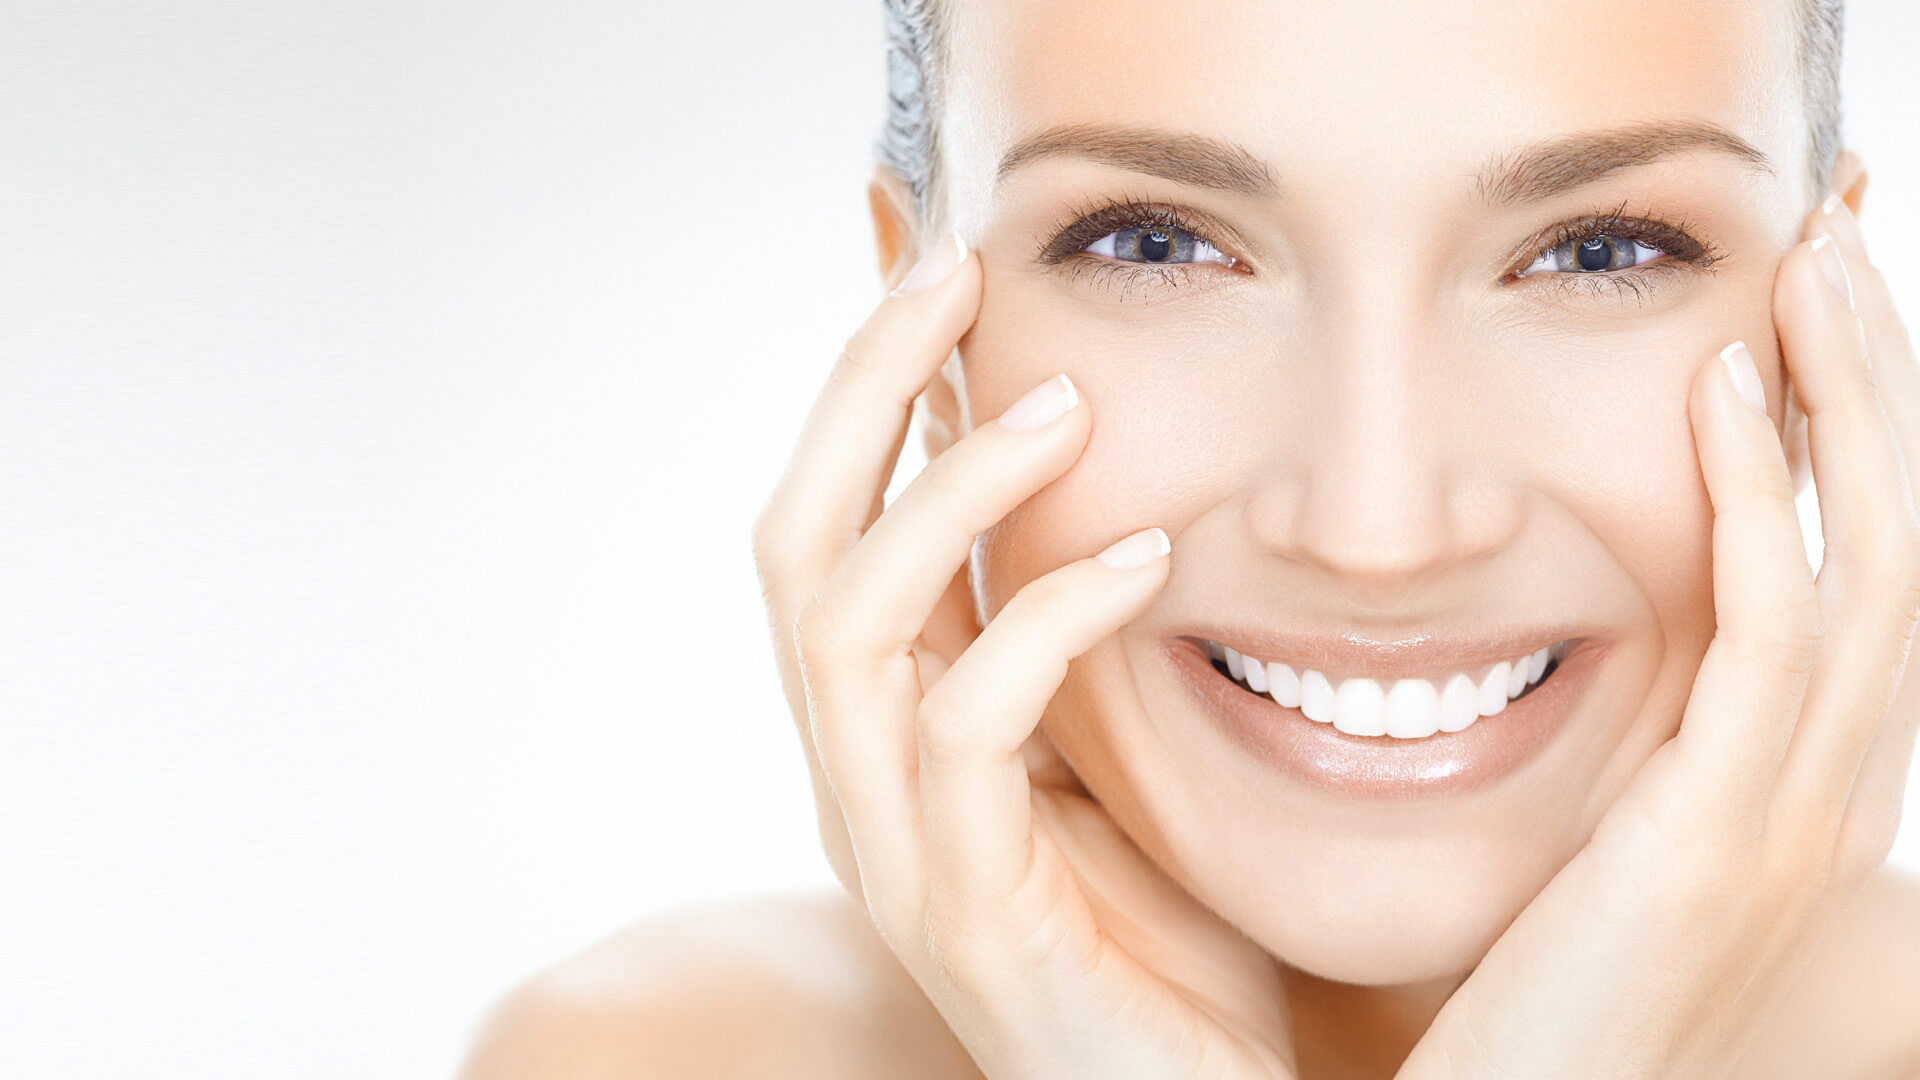 SkinTight - natural anti-aging formula for younger look